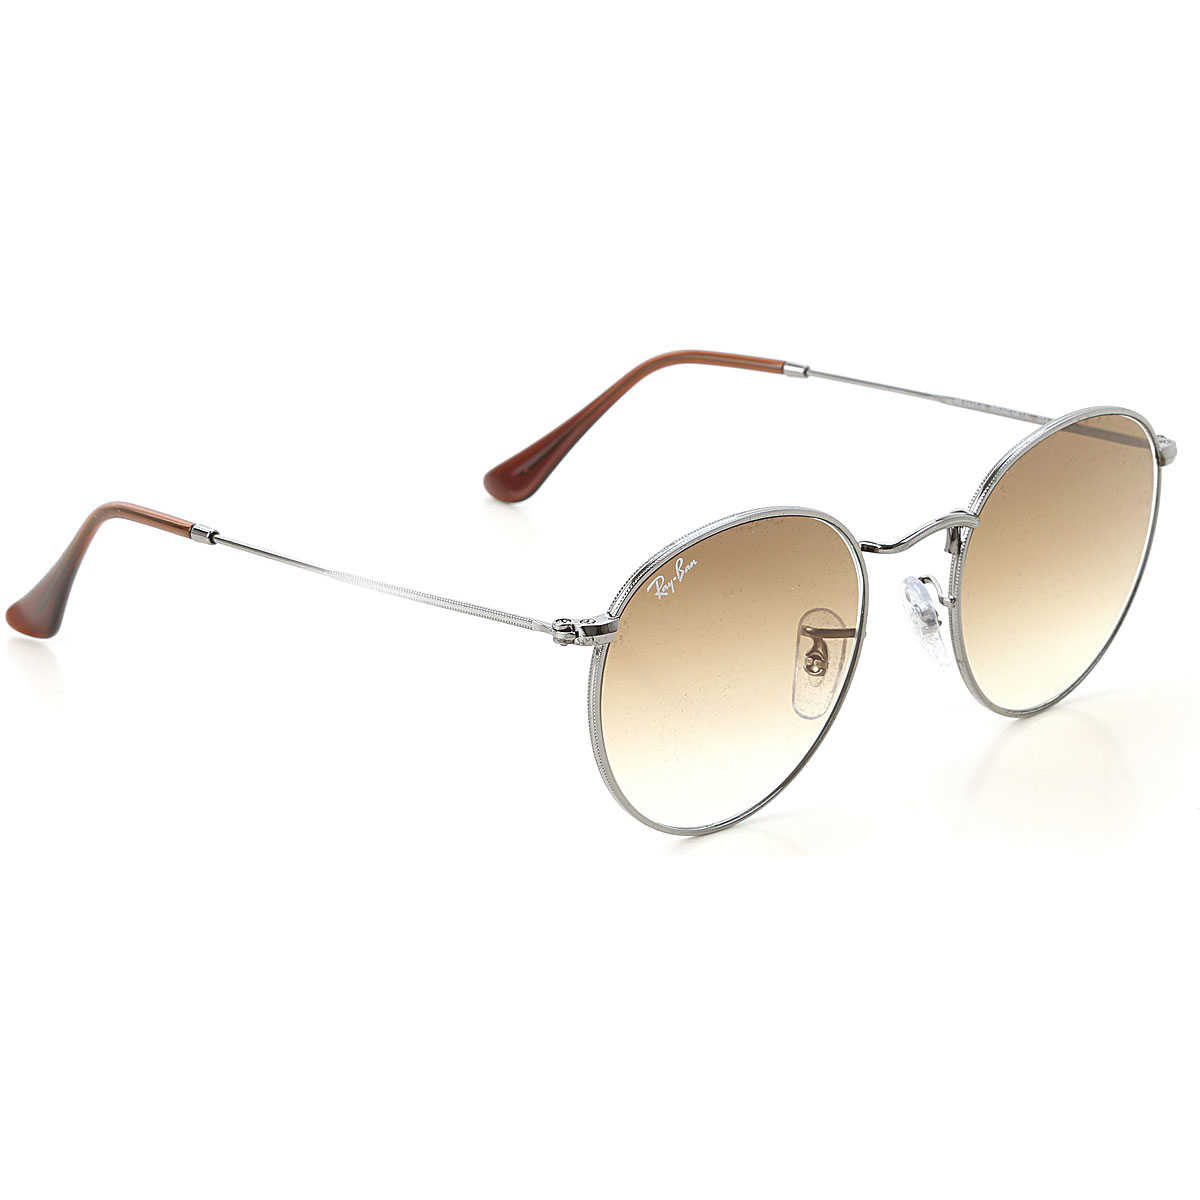 Ray Ban Sunglasses On Sale